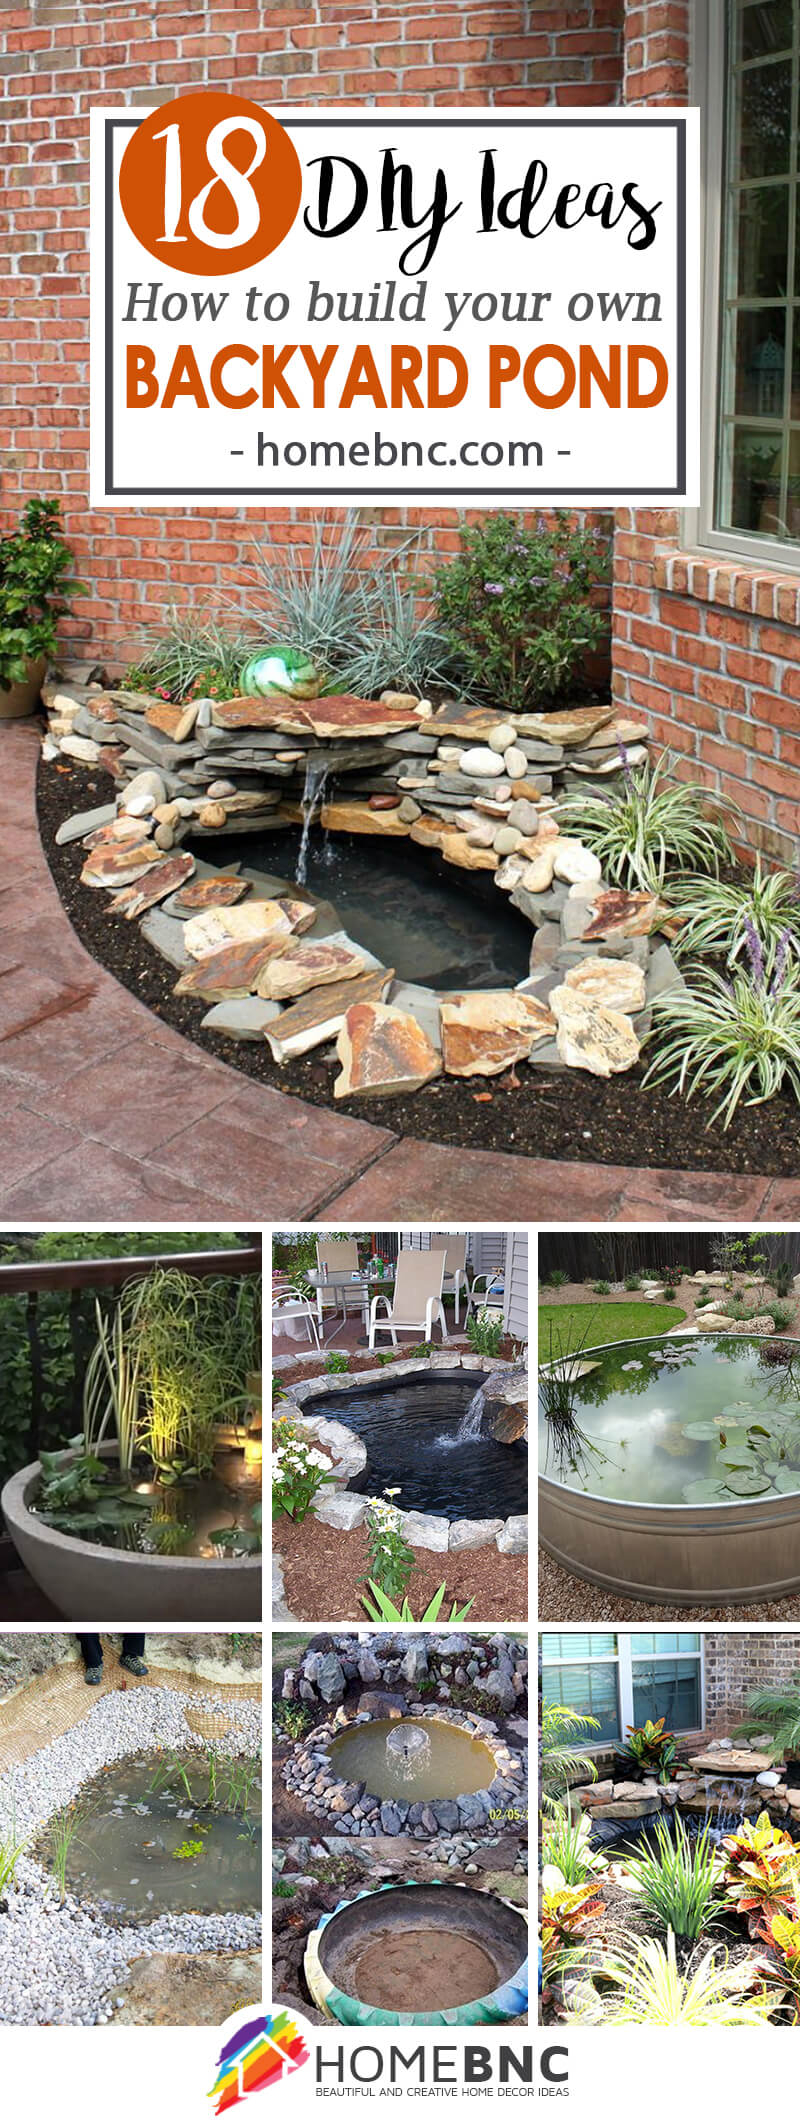 18 Best Diy Backyard Pond Ideas And Designs For 2019 inside 11 Some of the Coolest Initiatives of How to Upgrade Backyard Small Pond Ideas